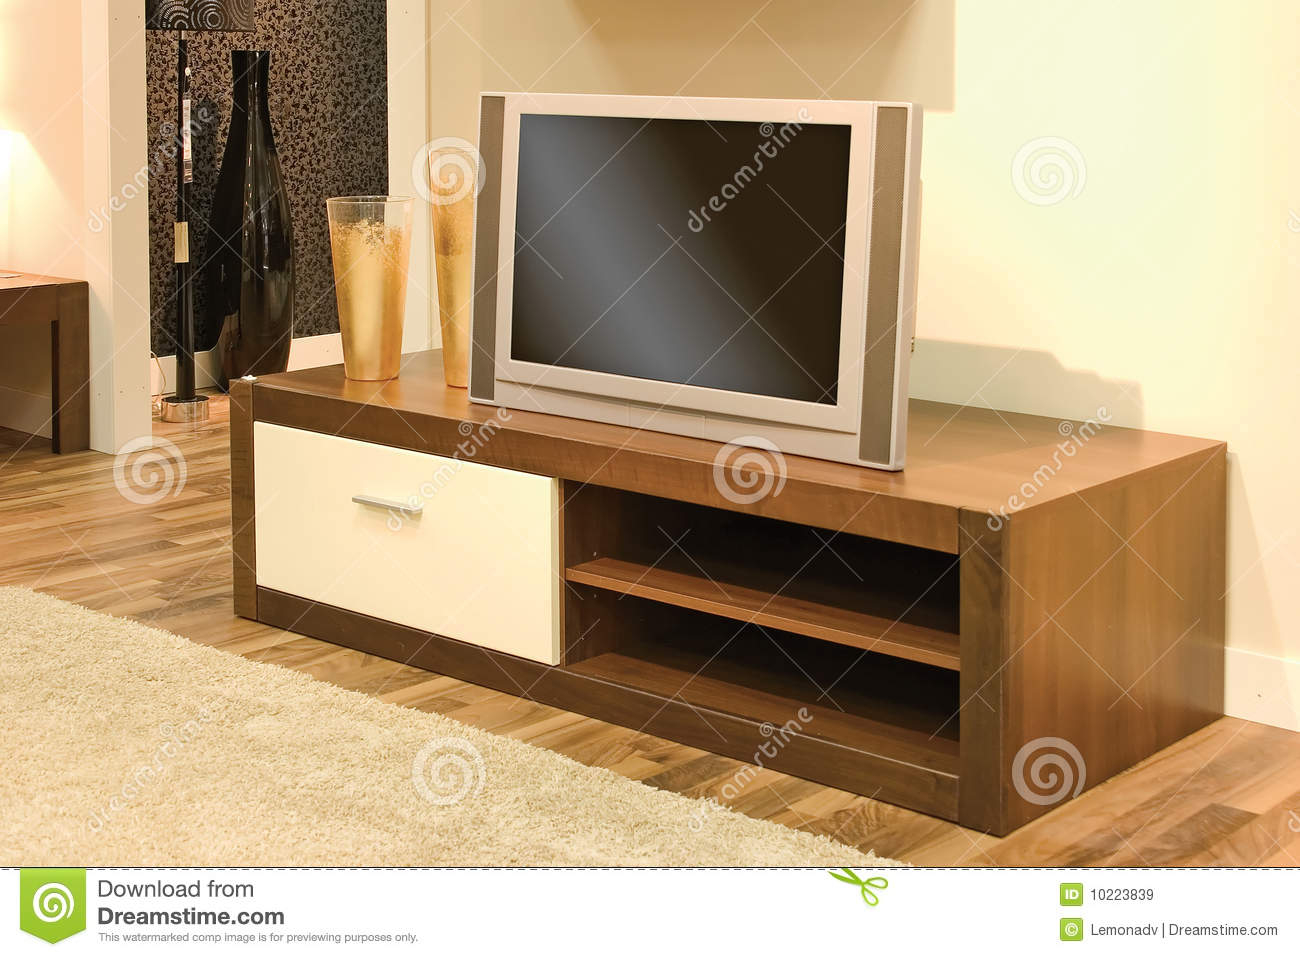 Living Room With Tv Set Stock Image Image Of Renovation 10223839 inside 13 Clever Ideas How to Improve Living Room Sets With Free TV